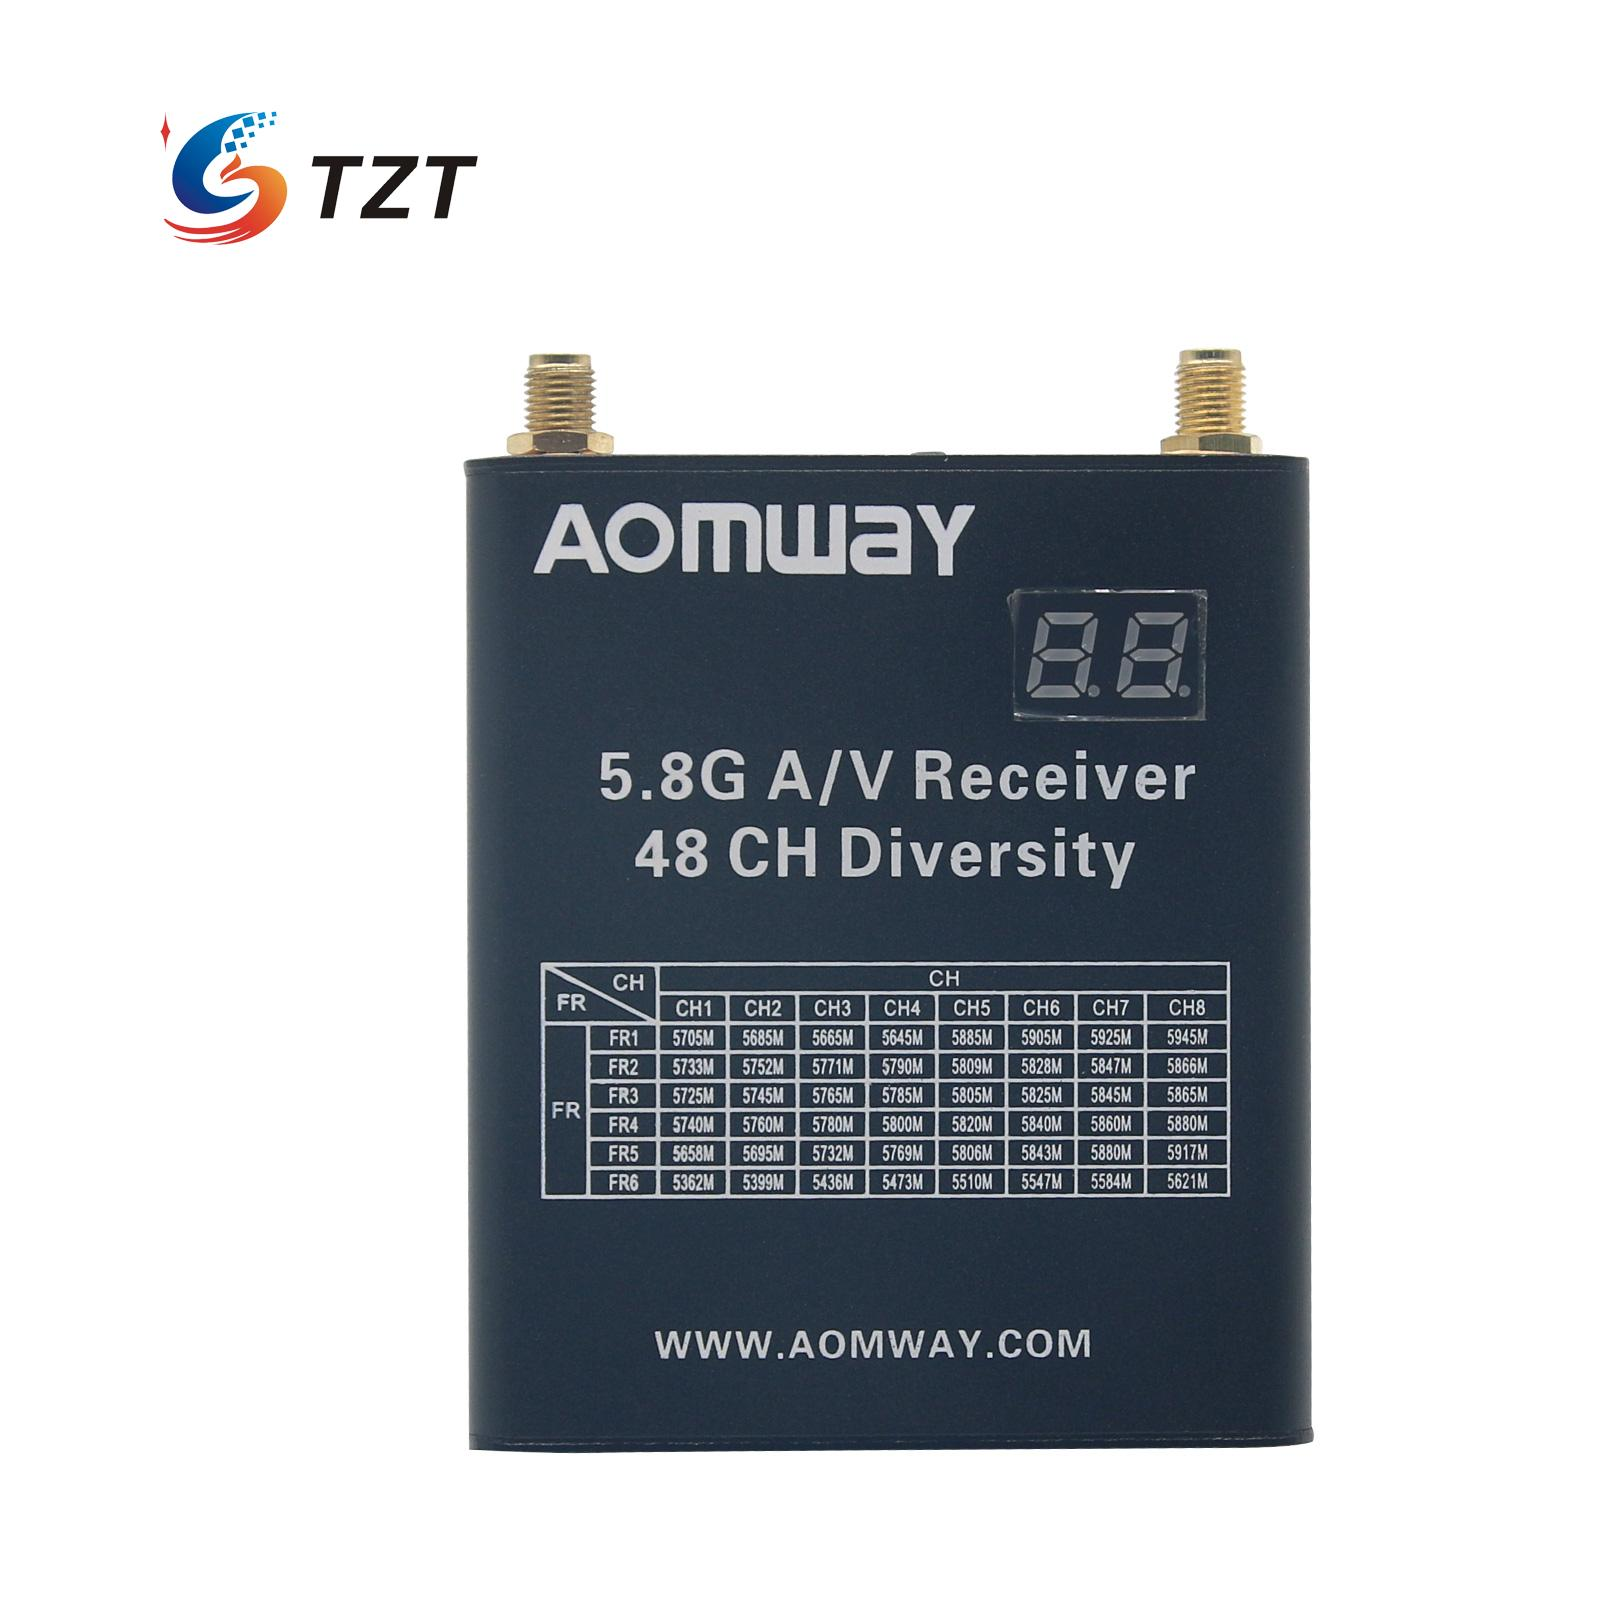 Aomway 5.8G A/V Receiver 48 CH FPV Telemetry Diversity DVR Image for RC Aircraft Multicopter hot new aomway rx006 dvr 5 8g 48ch diversity raceband a v receiver with built in video recorder